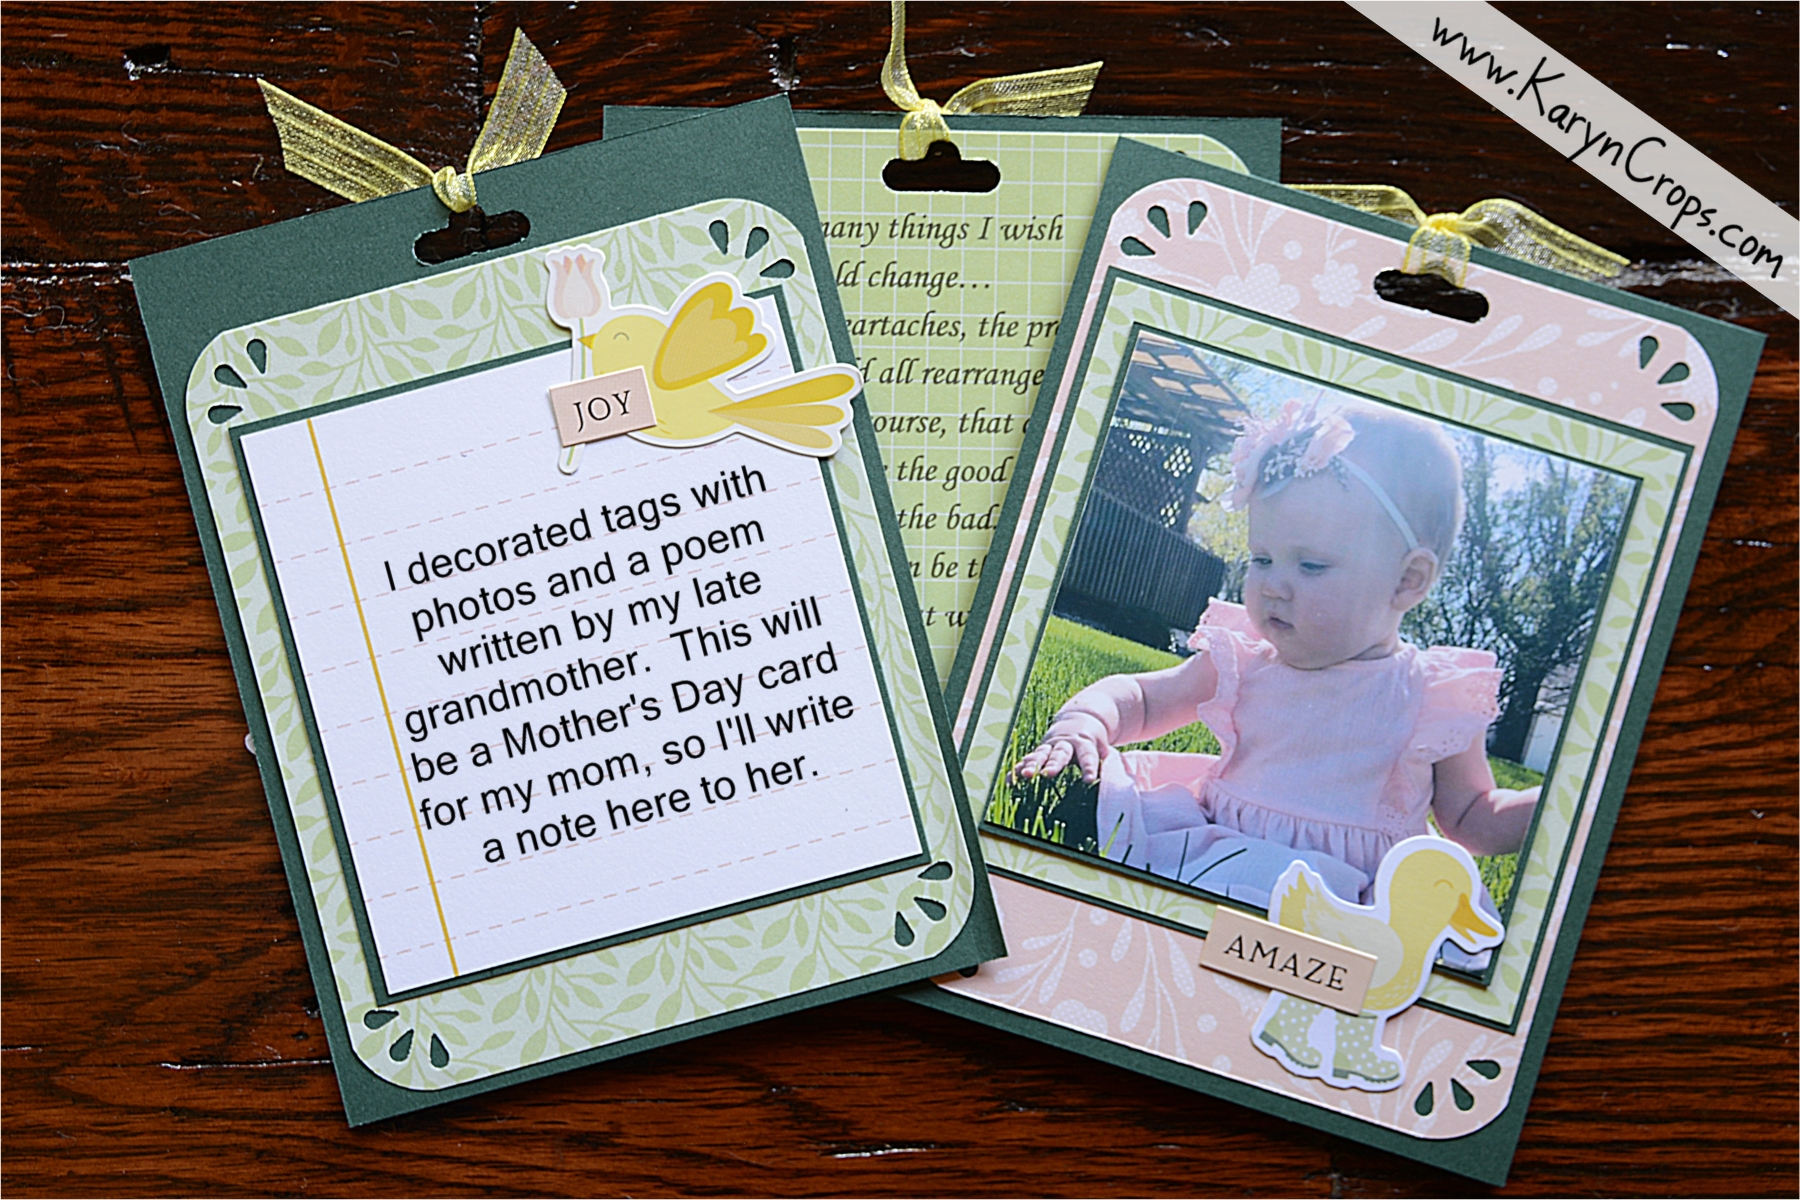 KarynCropsCLSFeaturedFridayCardAndTags - Page 001